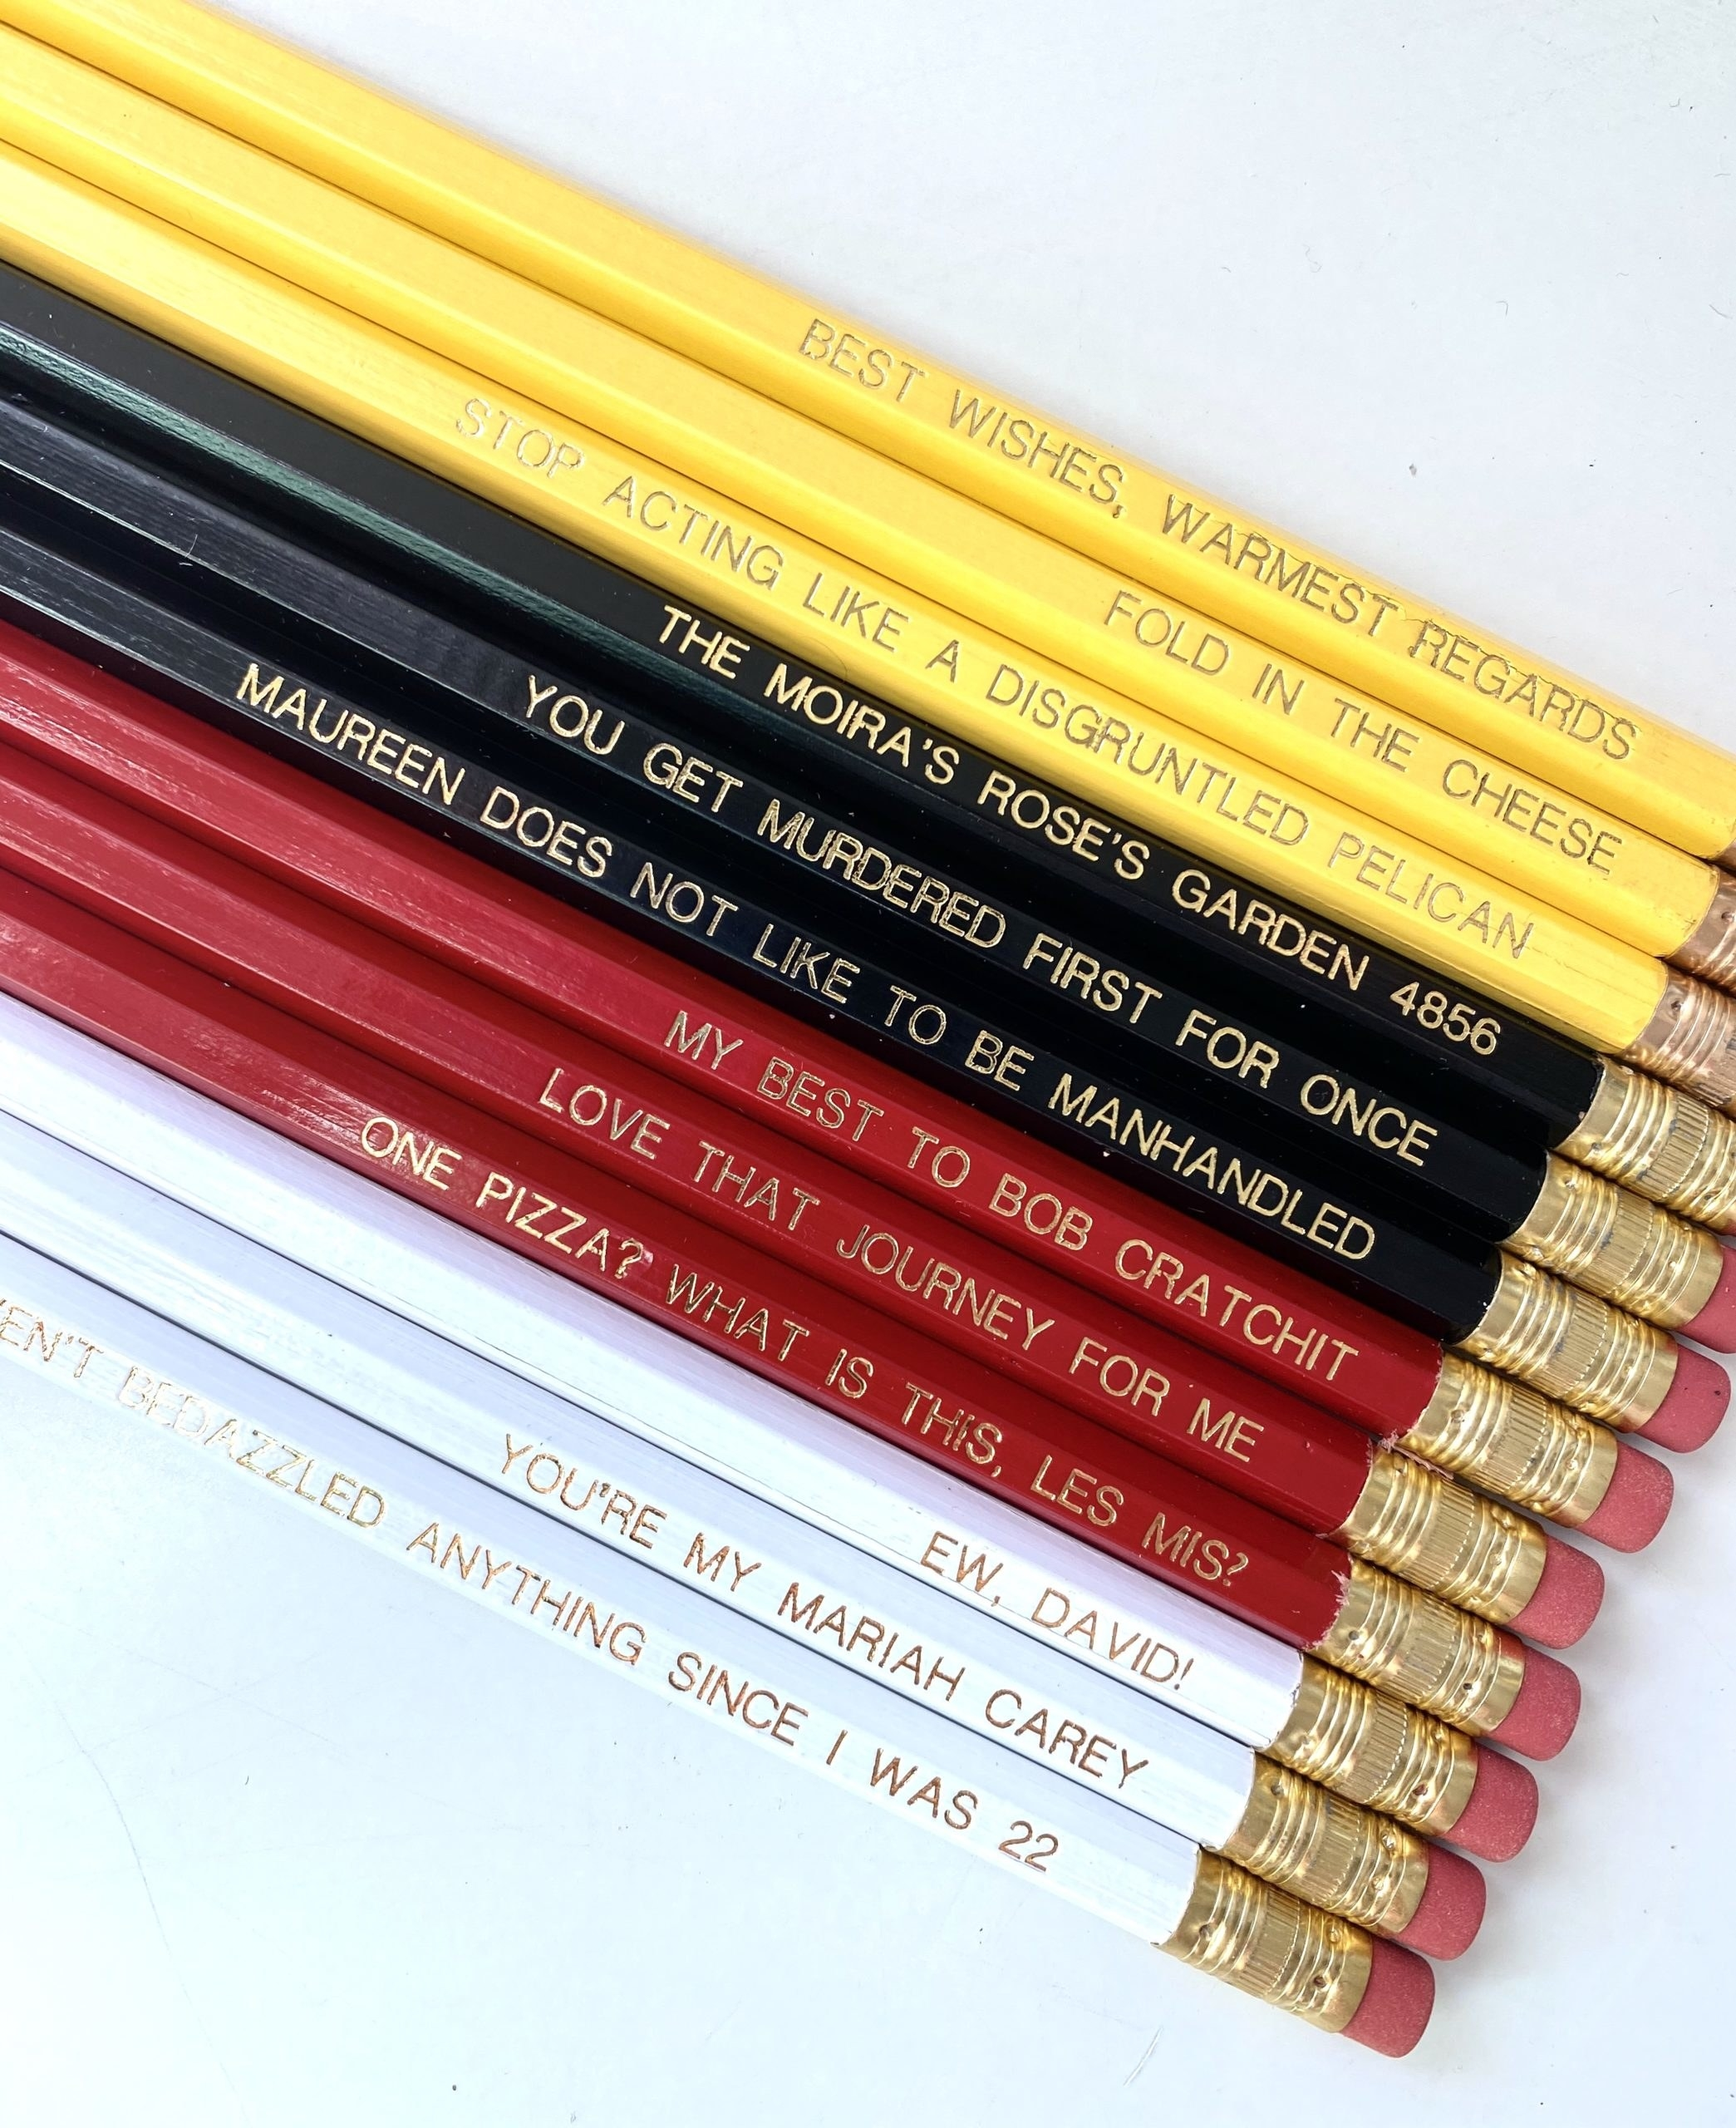 """the set, featuring three yellow, three black, three red, and three white pencils each with a different quote in gold text, from classics like """"Fold in the cheese"""" to more obscure gems like """"I haven't bedazzled anything since I was 22"""""""